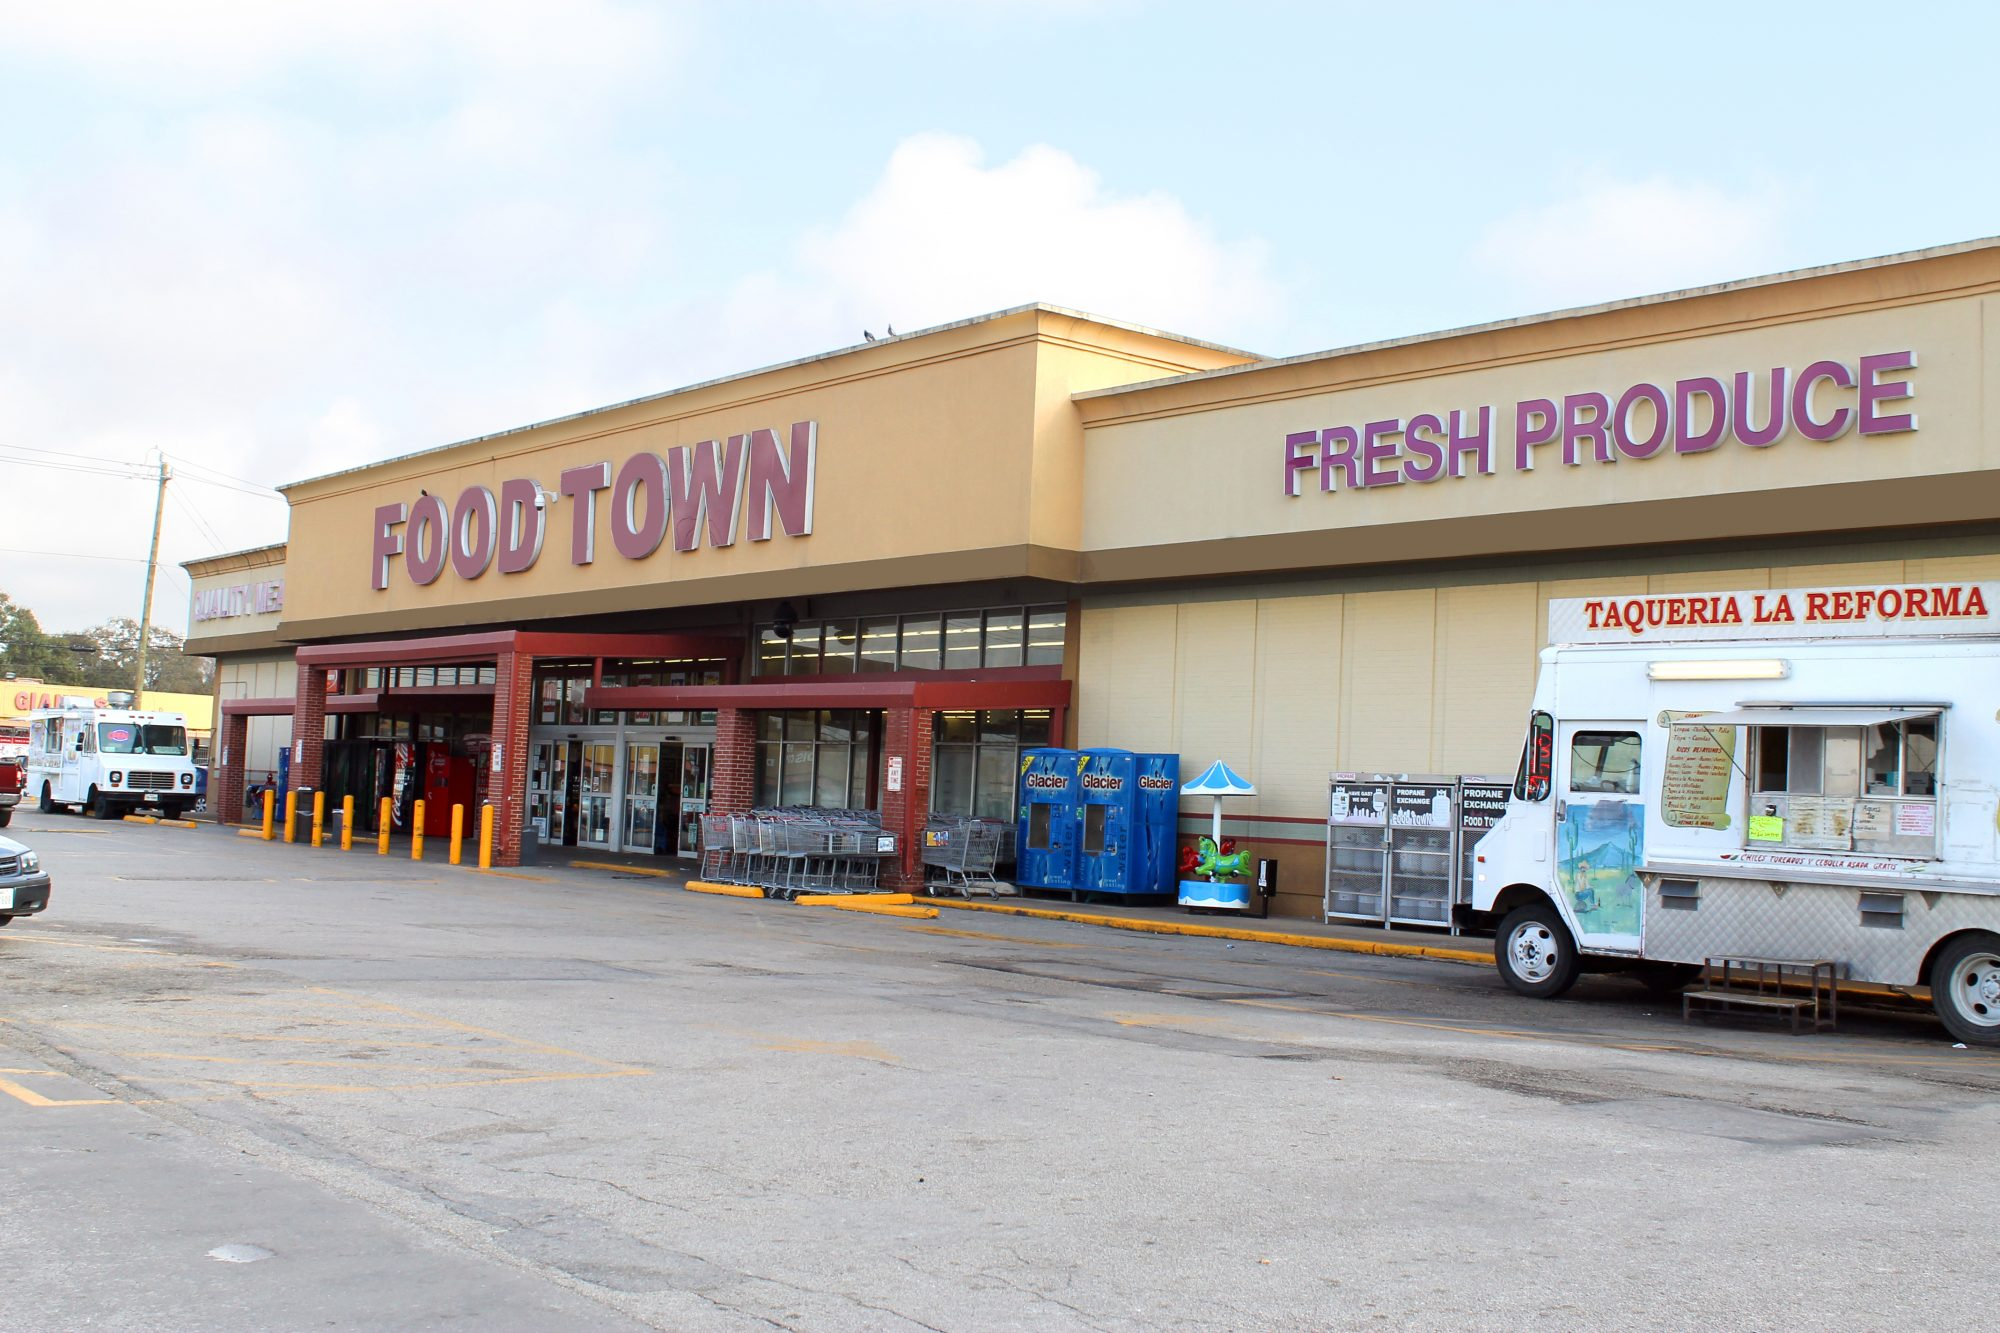 Food Town grocery store on Airline Dr & Little York Rd